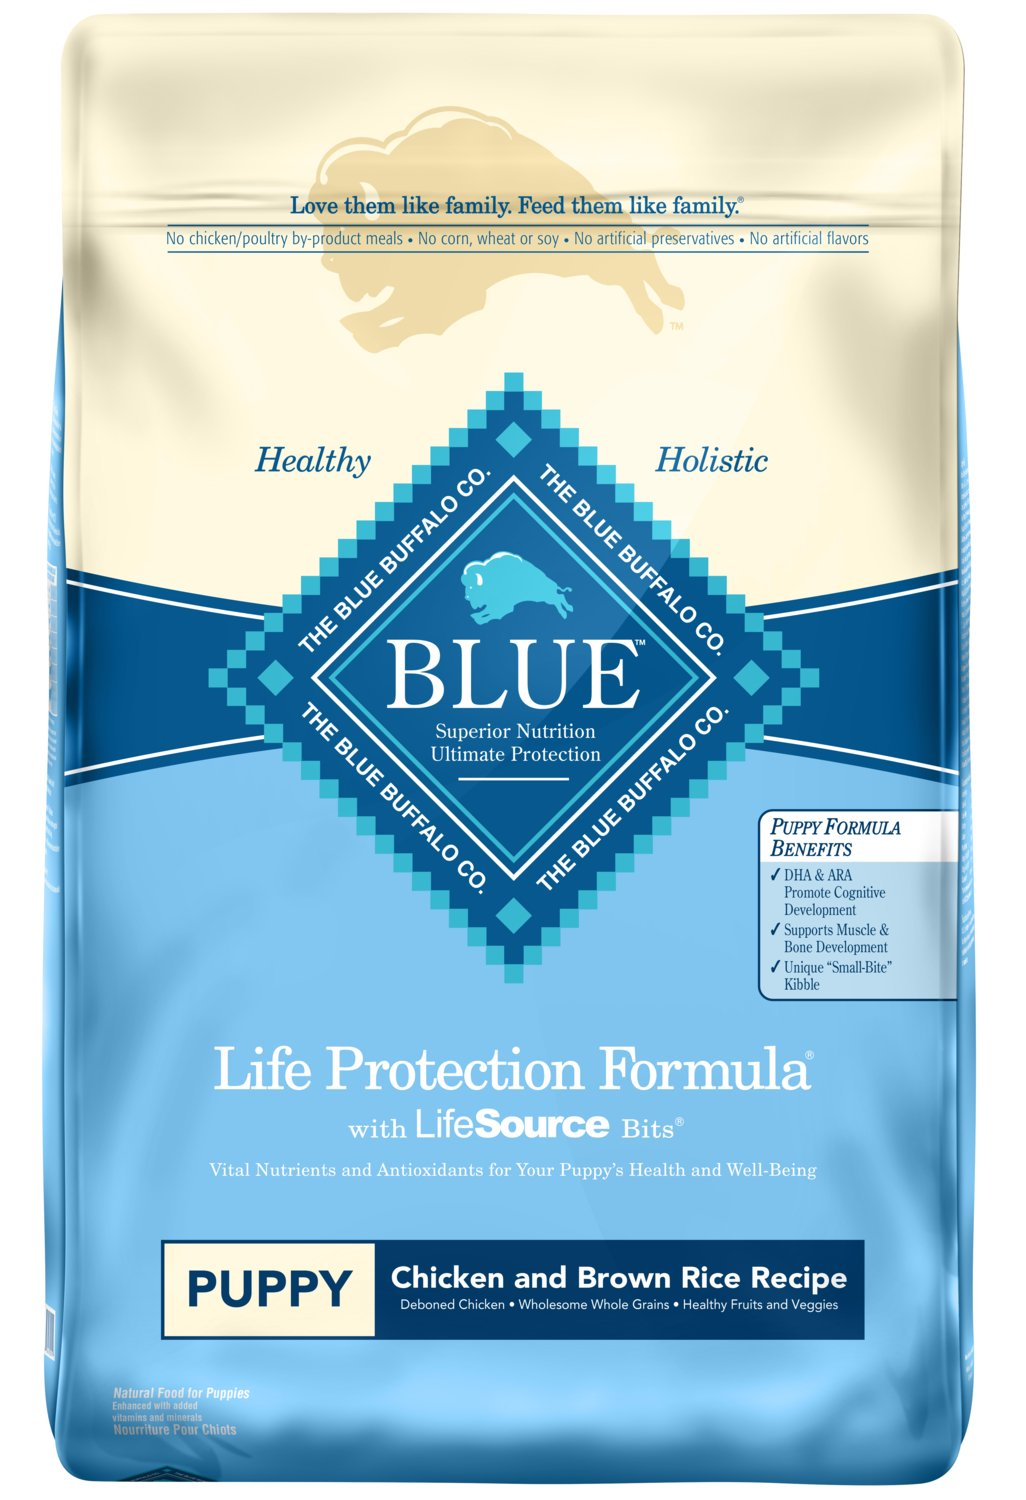 Blue Buffalo Life Protection Formula Puppy Dog Food – Natural Dry Dog Food for Puppies